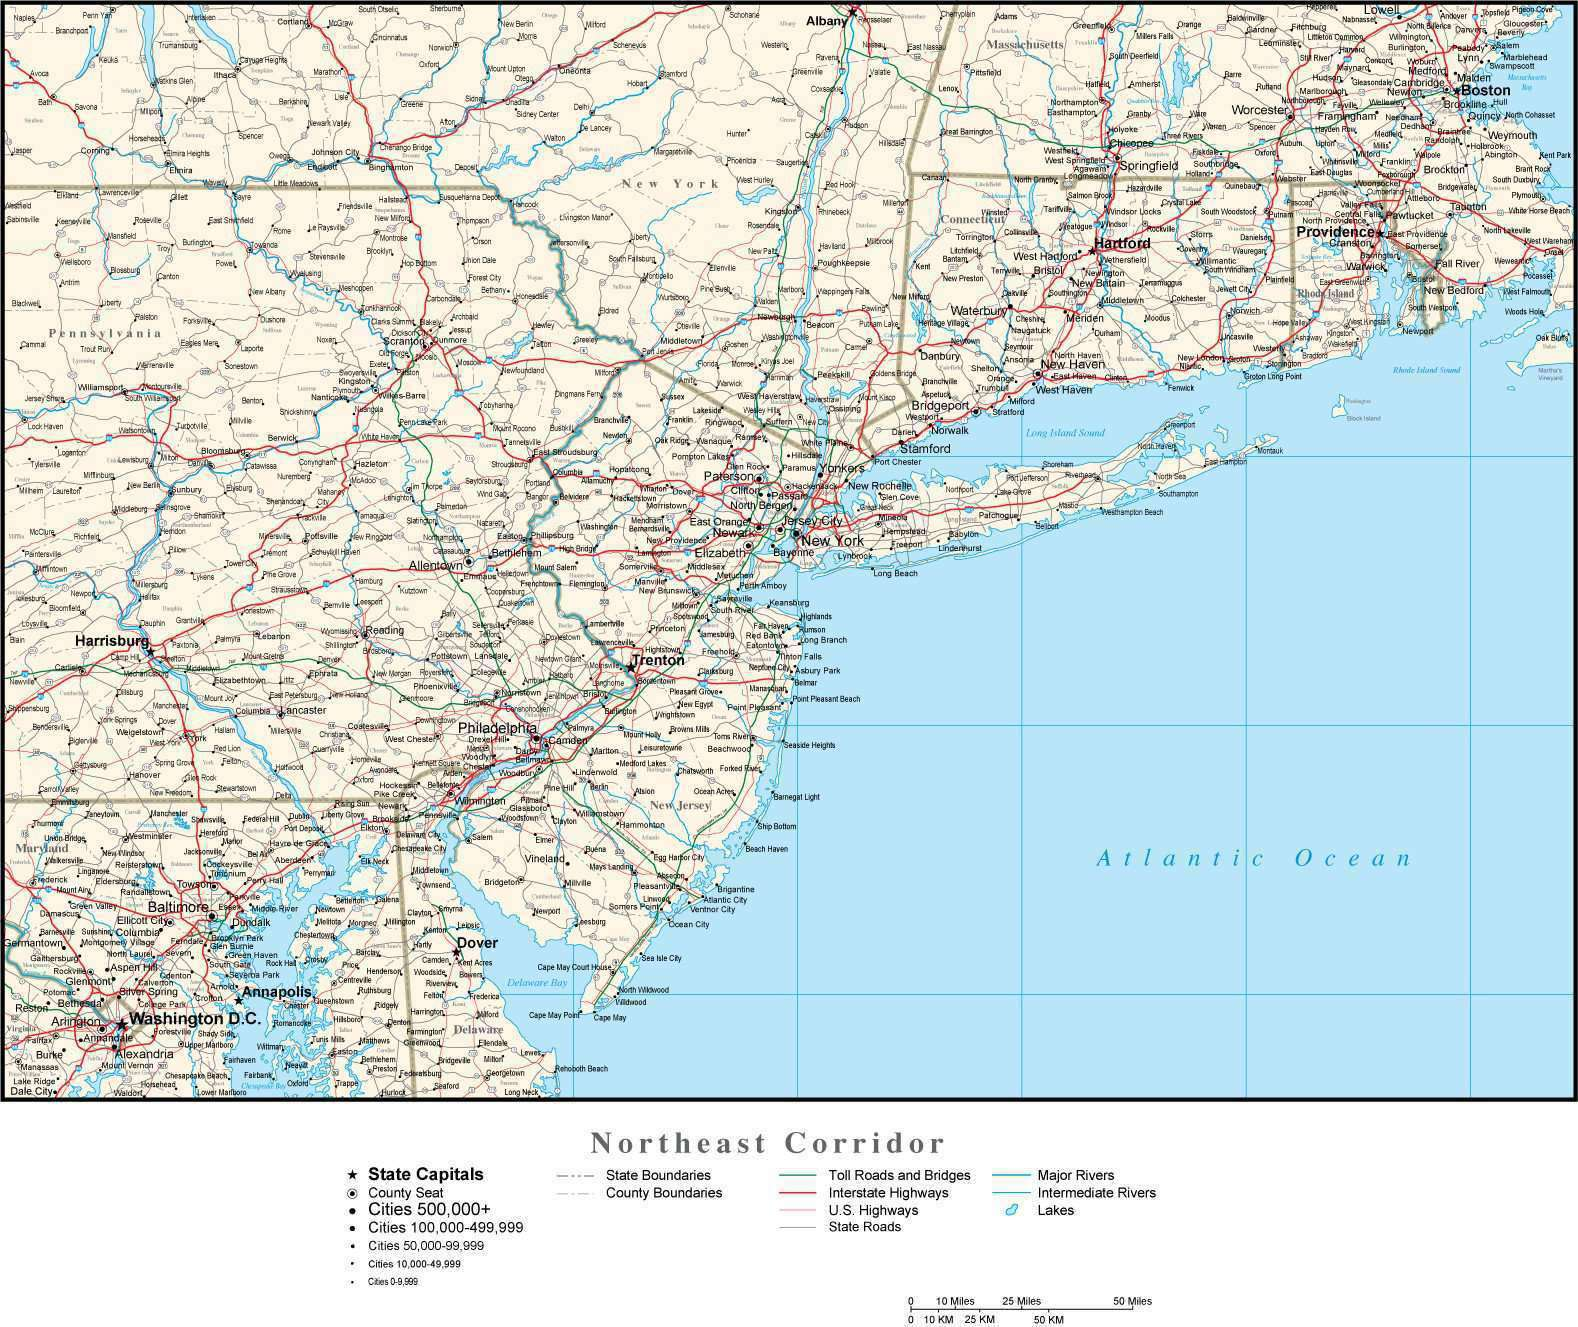 Northeast Corridor Map with State Boundaries, Cities and Highways ...